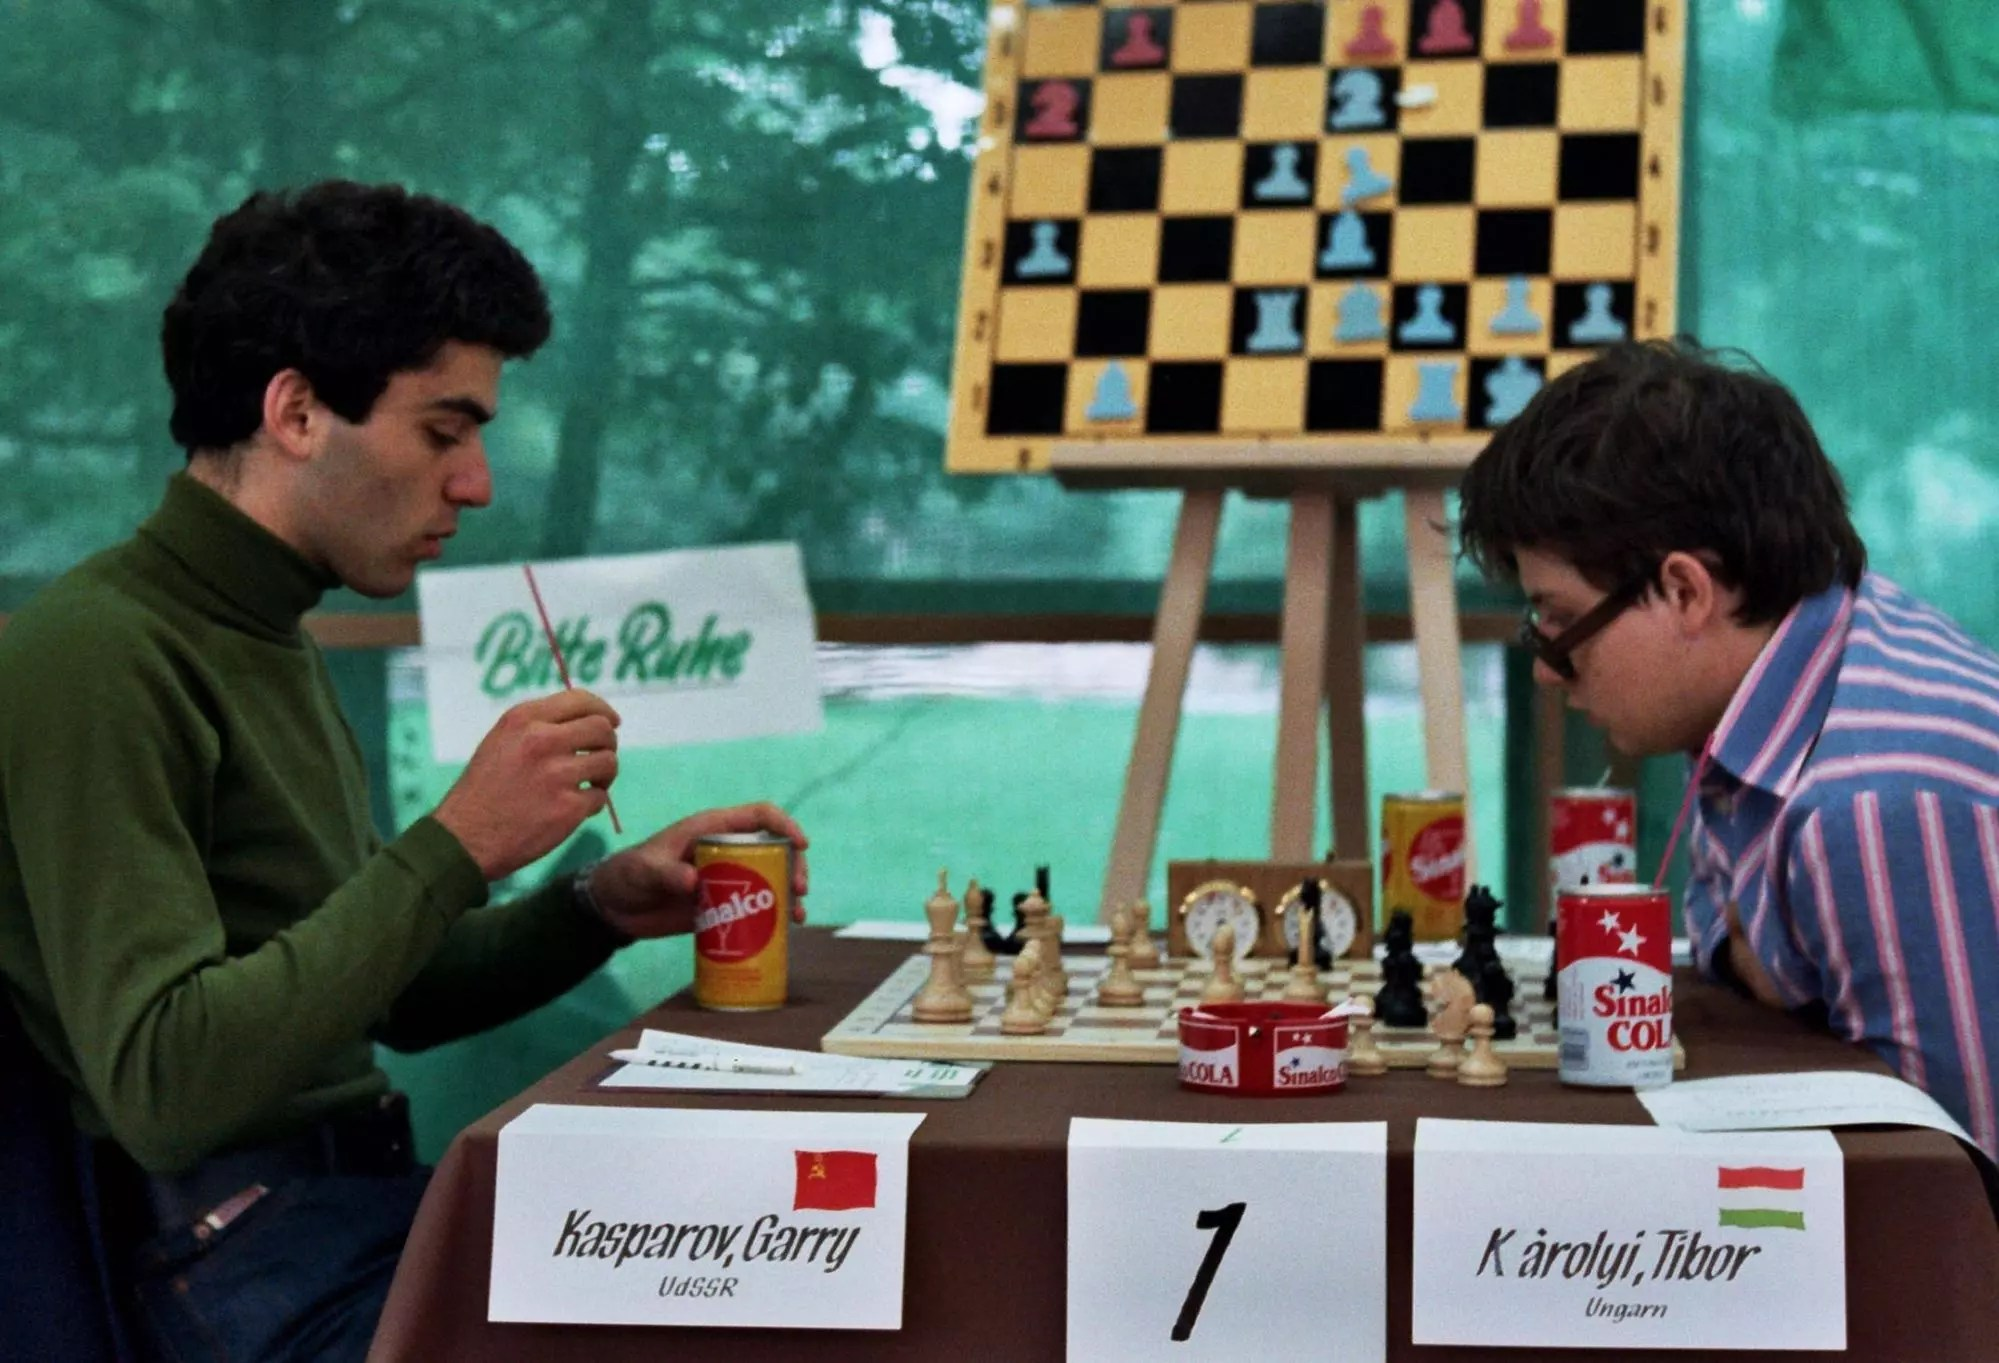 From left, Garry Kasparov with Tibor Karolyi, at the Junior Chess World Championship 1980 in  Dortmund [Credit: Gerhard Hund]